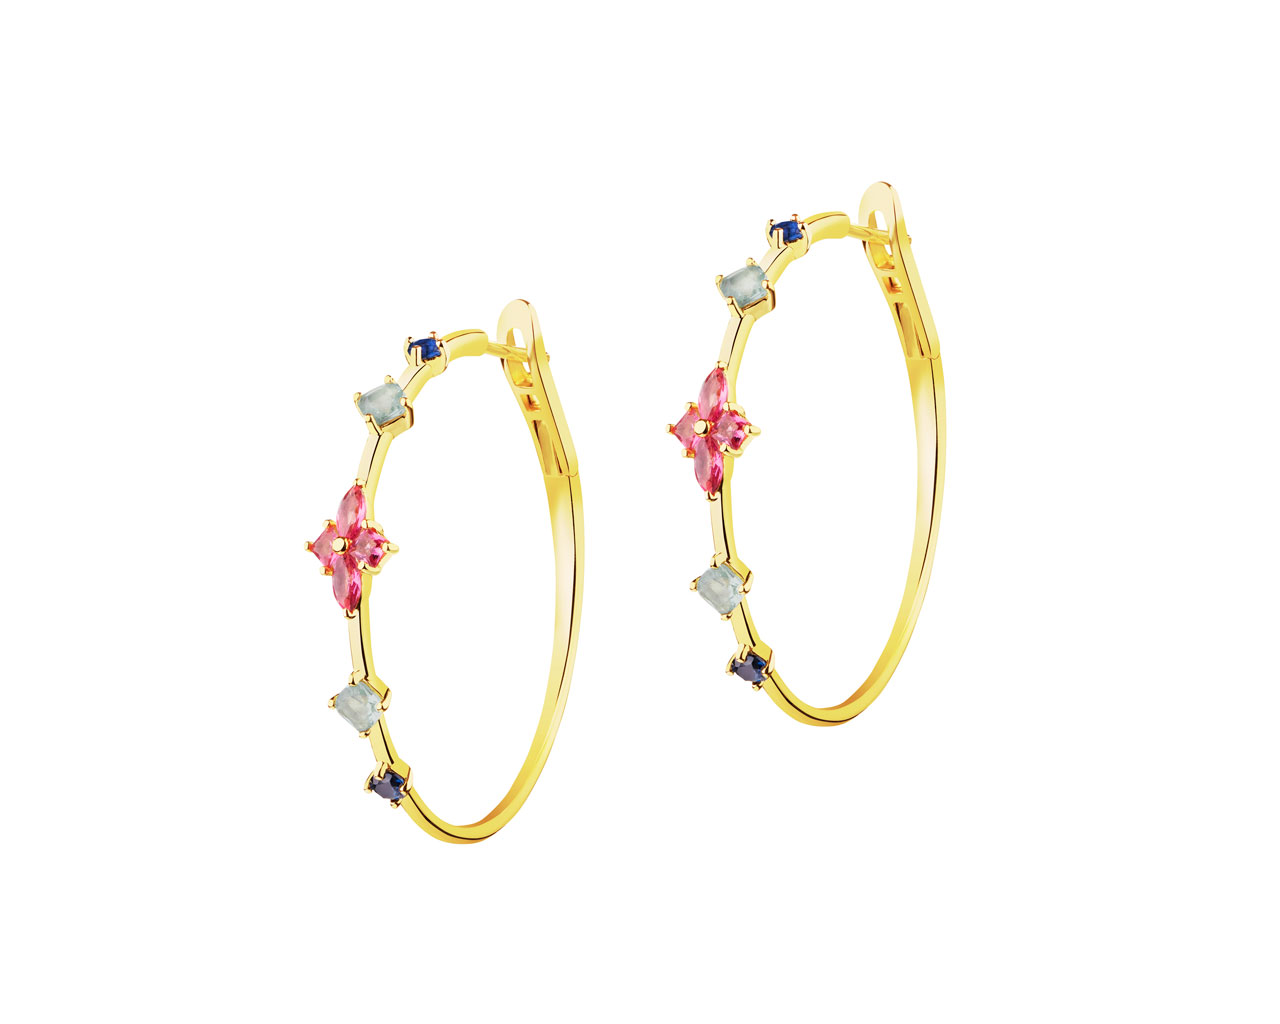 Gold-Plated Silver Earrings with Cubic Zirconia